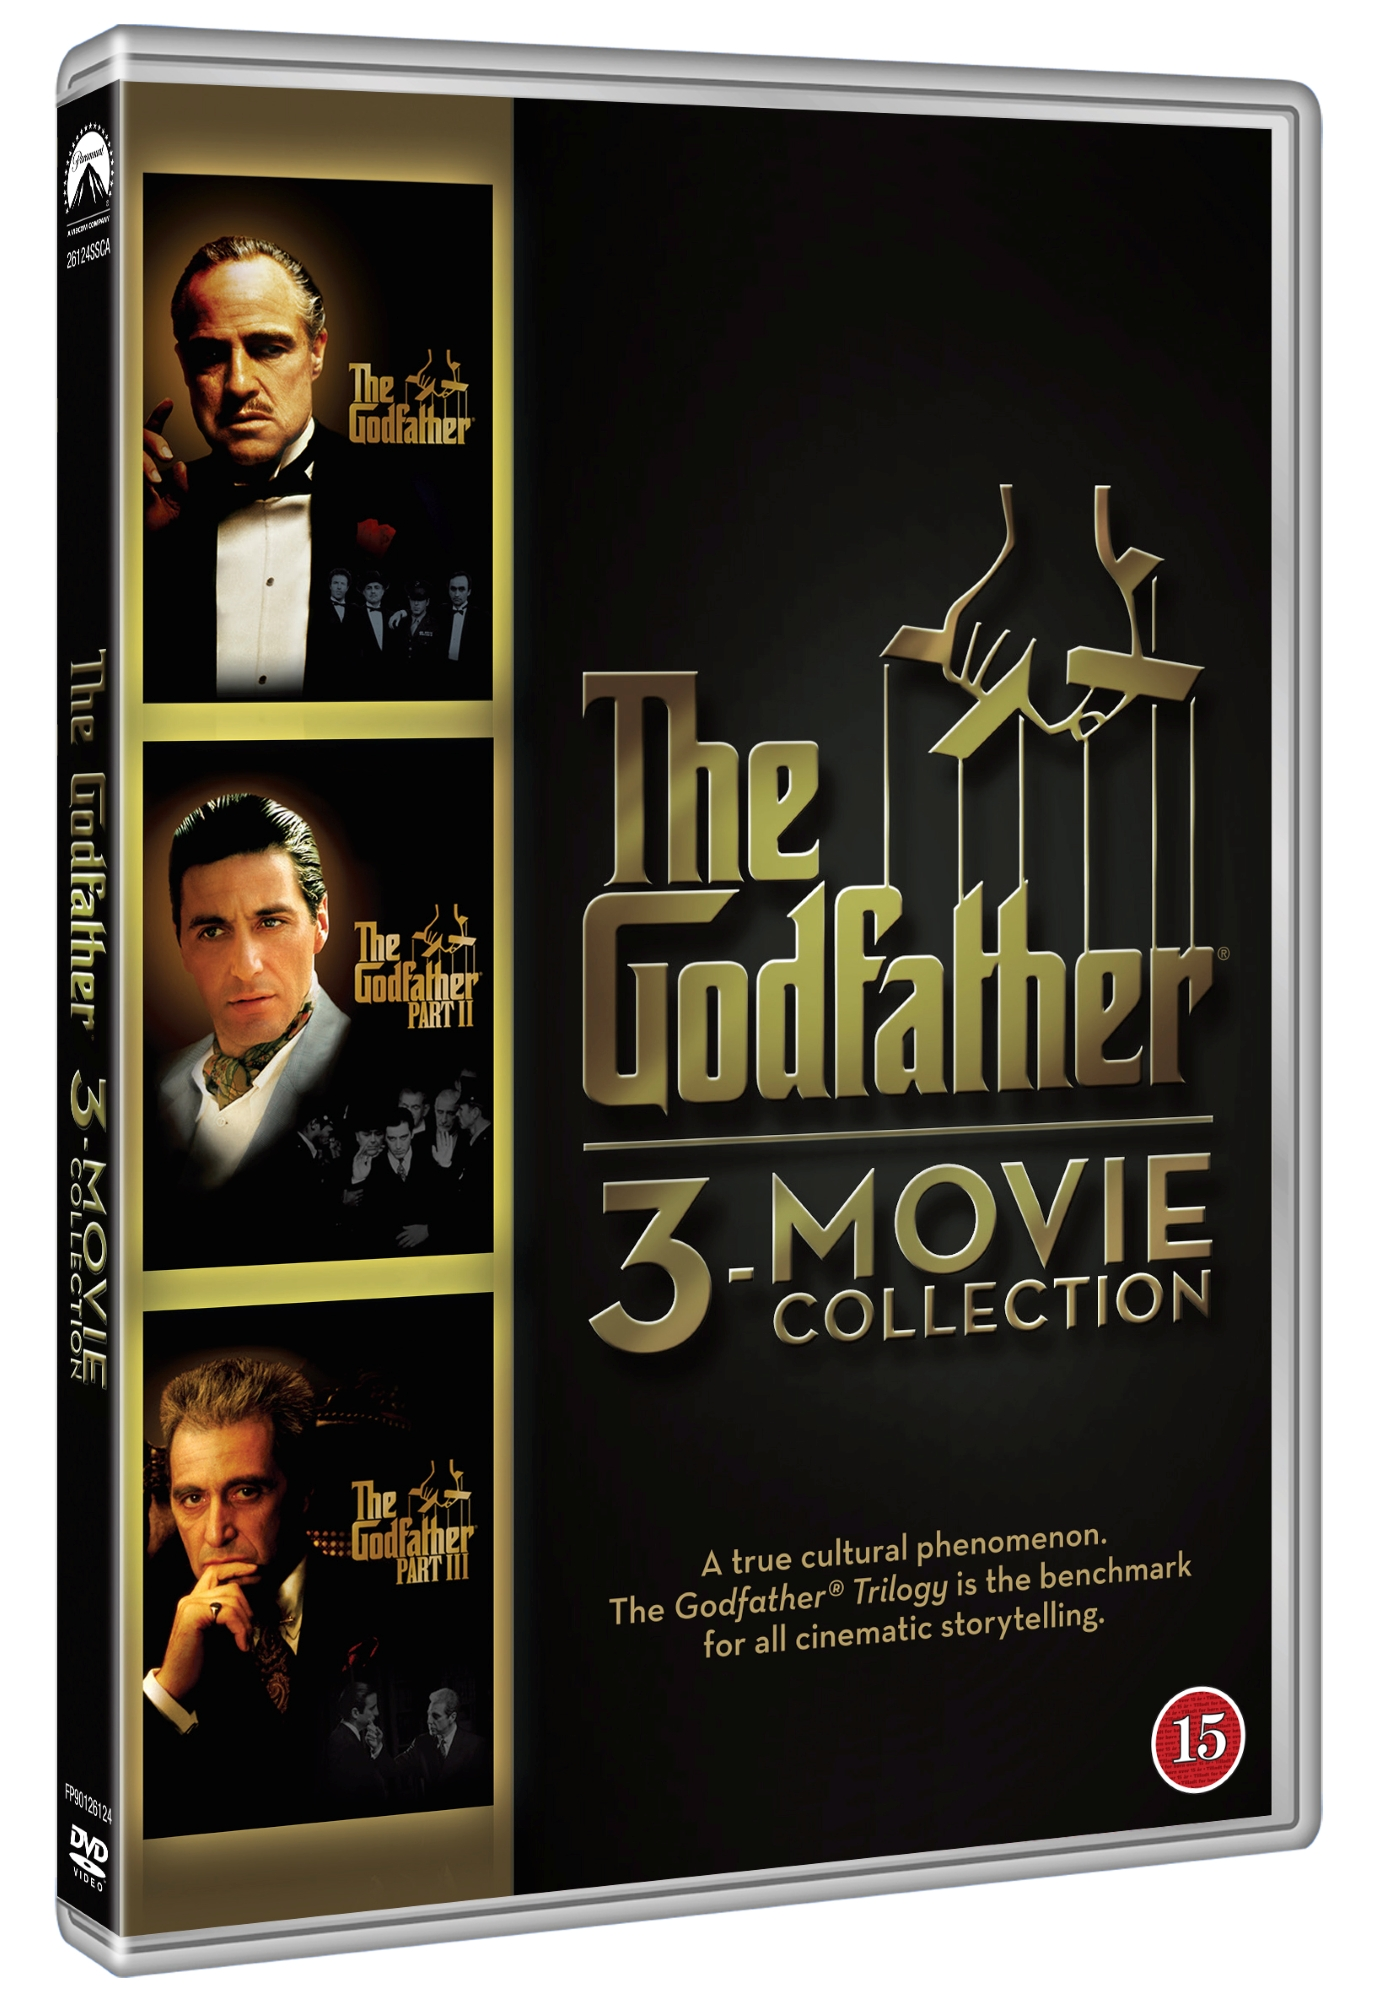 The Godfather 1-3 - Movie Collection (3 disc) - DVD